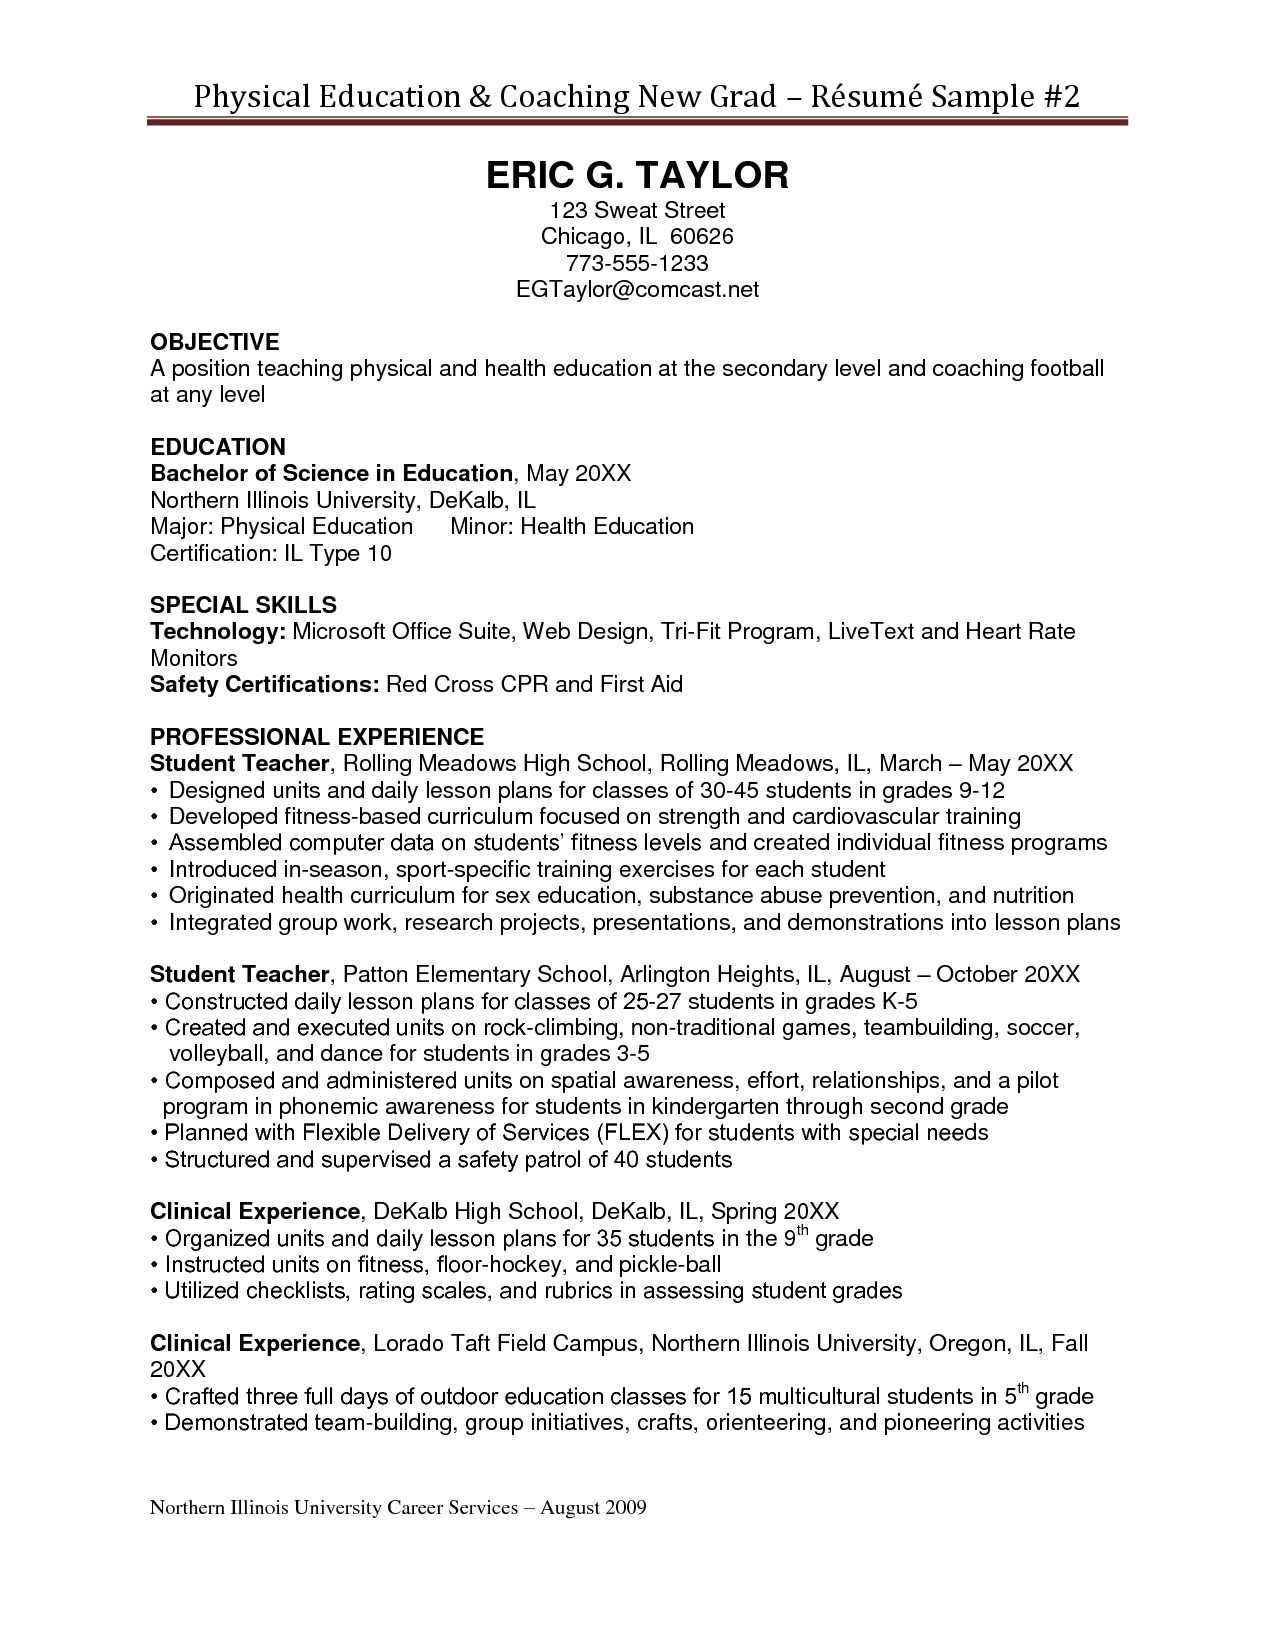 When You Write Your Resume, Especially A Resume For A Basketball Coach Job,  You Shouldnu0027t Write It At The Same Way With The Manager Resume Your Frie.  ...  Basketball Coach Resume